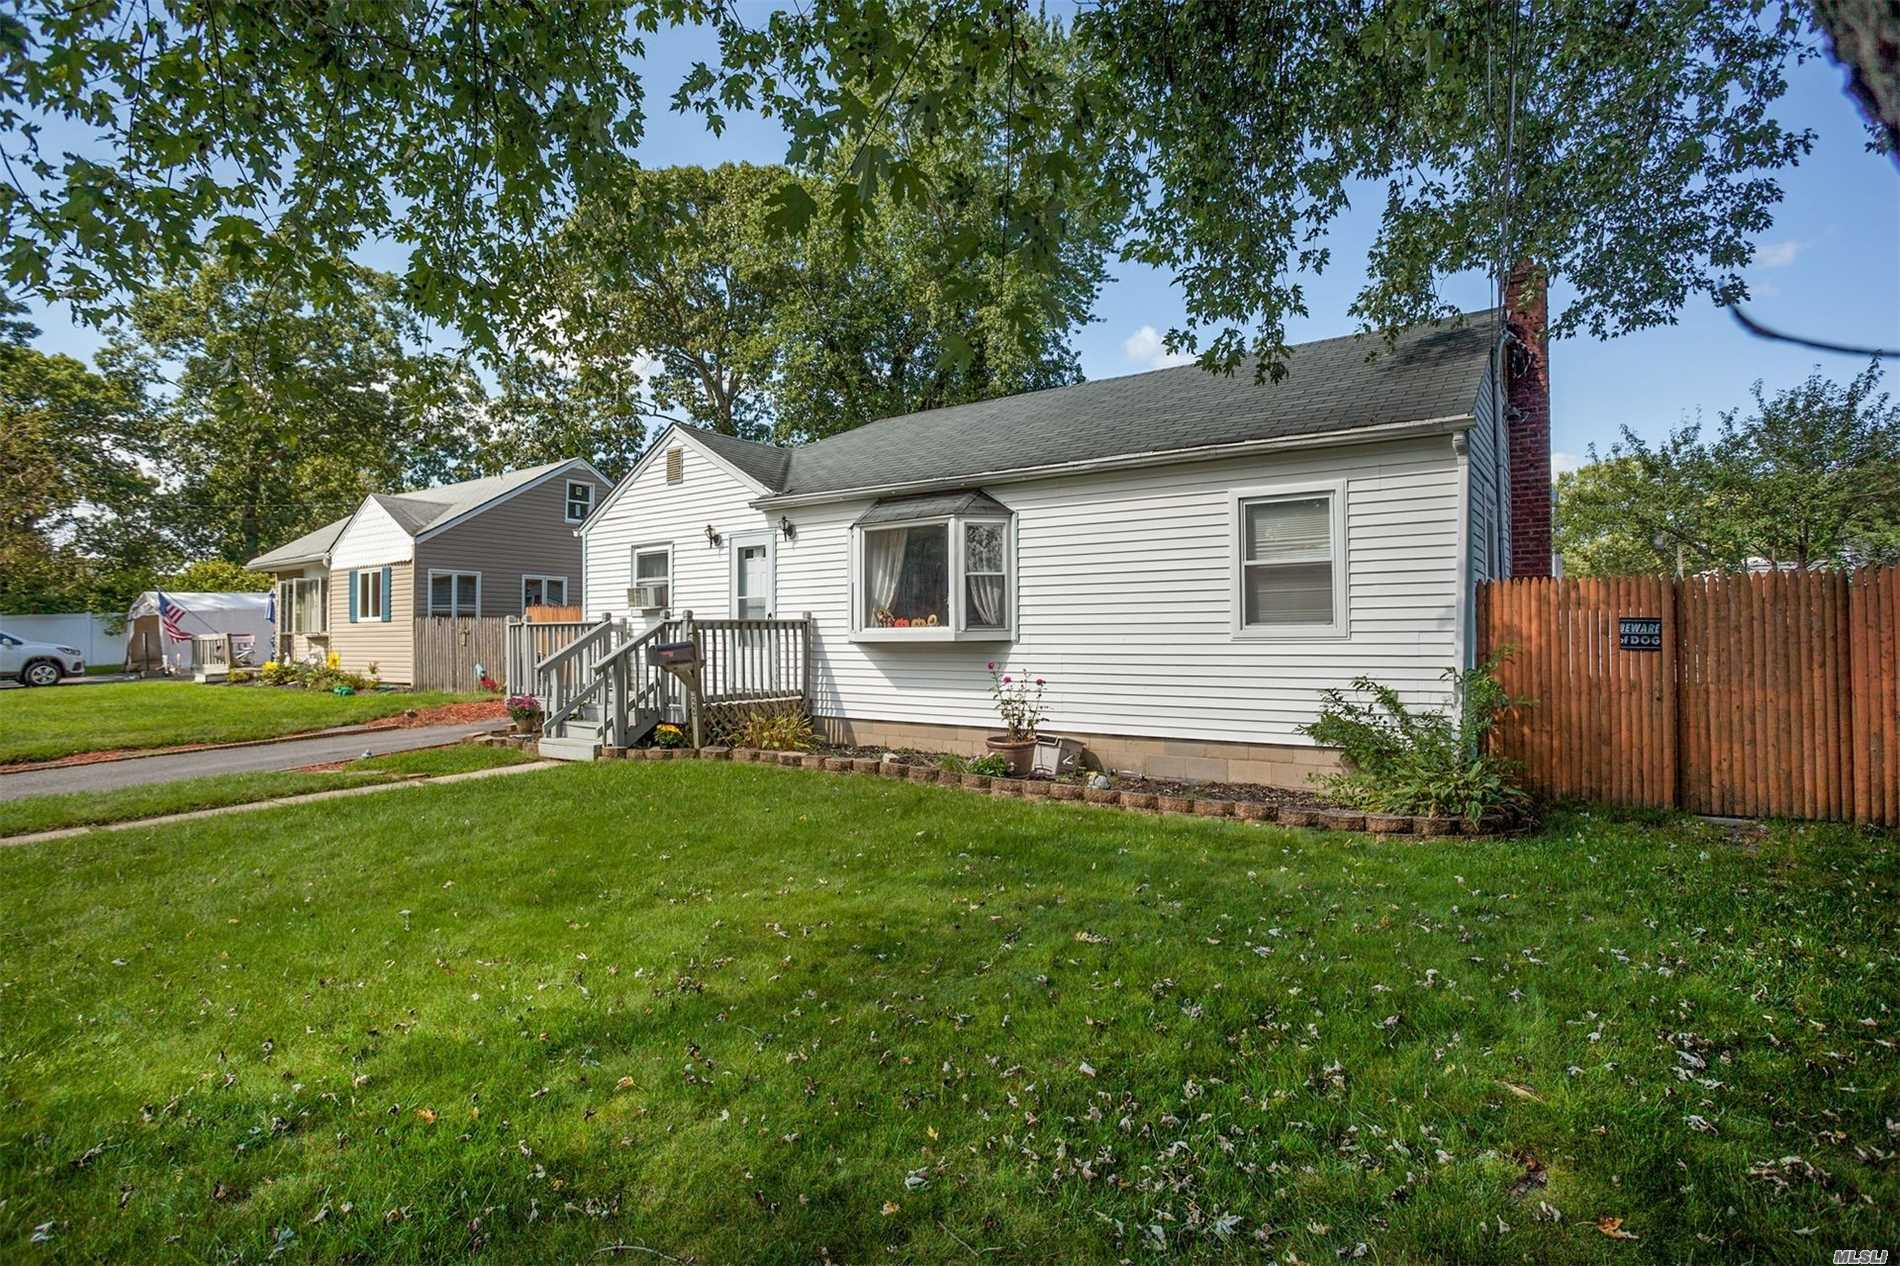 23 Snyder St - Patchogue, New York